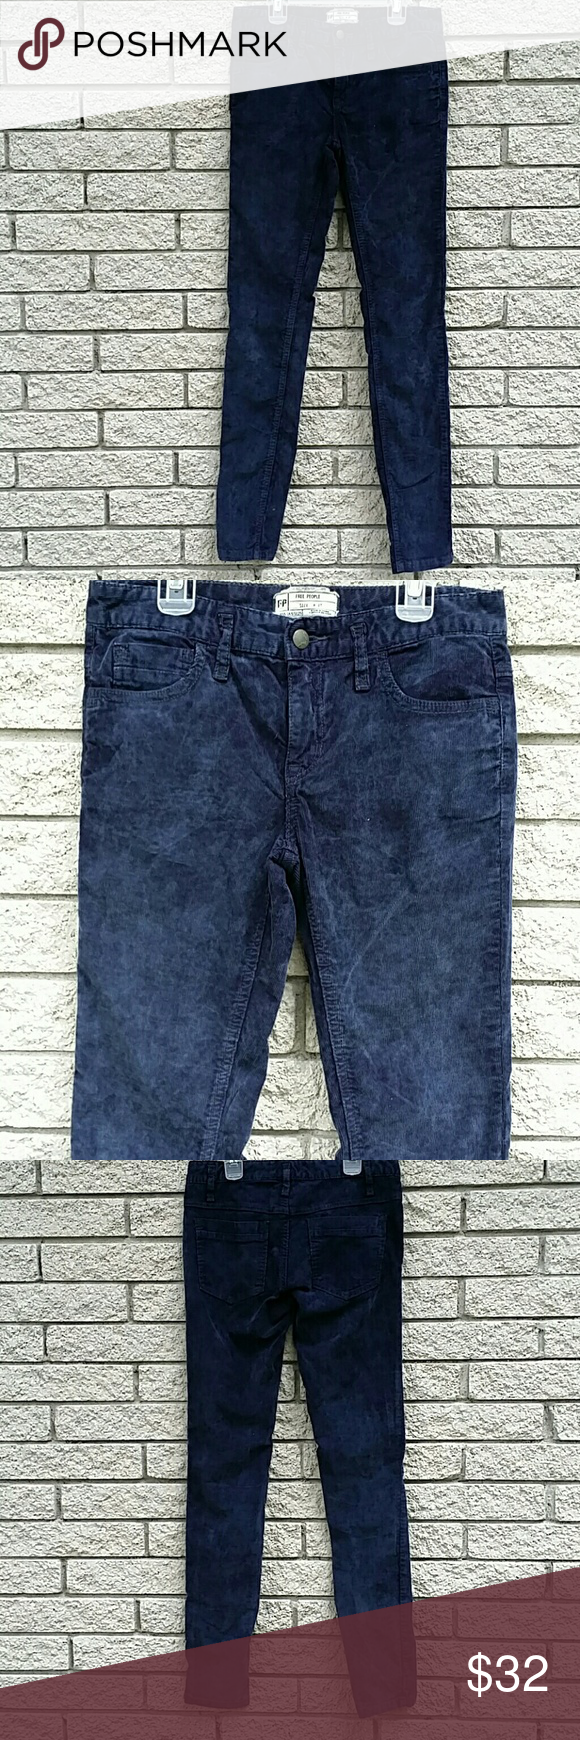 """FREE PEOPLE CORDUROY Pants  SIZE 27 Cotton and spandex  skinny fit  15.25"""" across the waist  8.25"""" waist to crotch  32"""" crotch to hem  washed vintage look Free People Pants Skinny"""